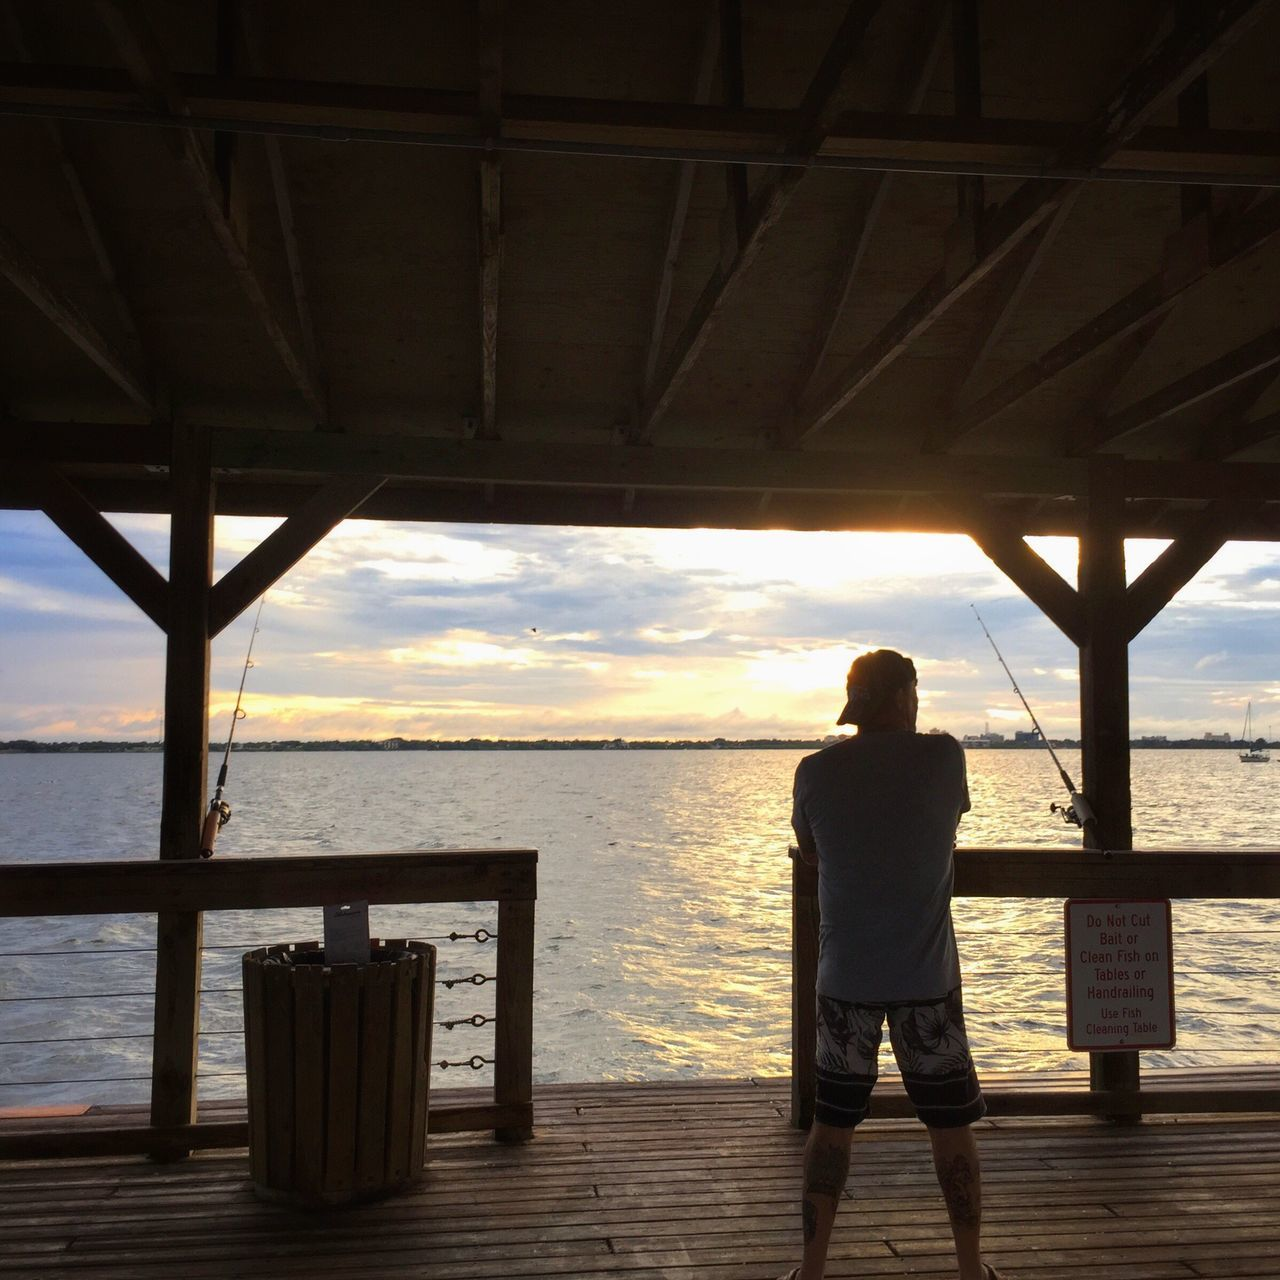 Watching his lines Fisherman Melbourne Beach, FL Indian River Lagoon Sunset Indian River Lagoon Melbourne Beach Pier Florida Sunset Fishing Pole Pier At Sunset Fishing Time